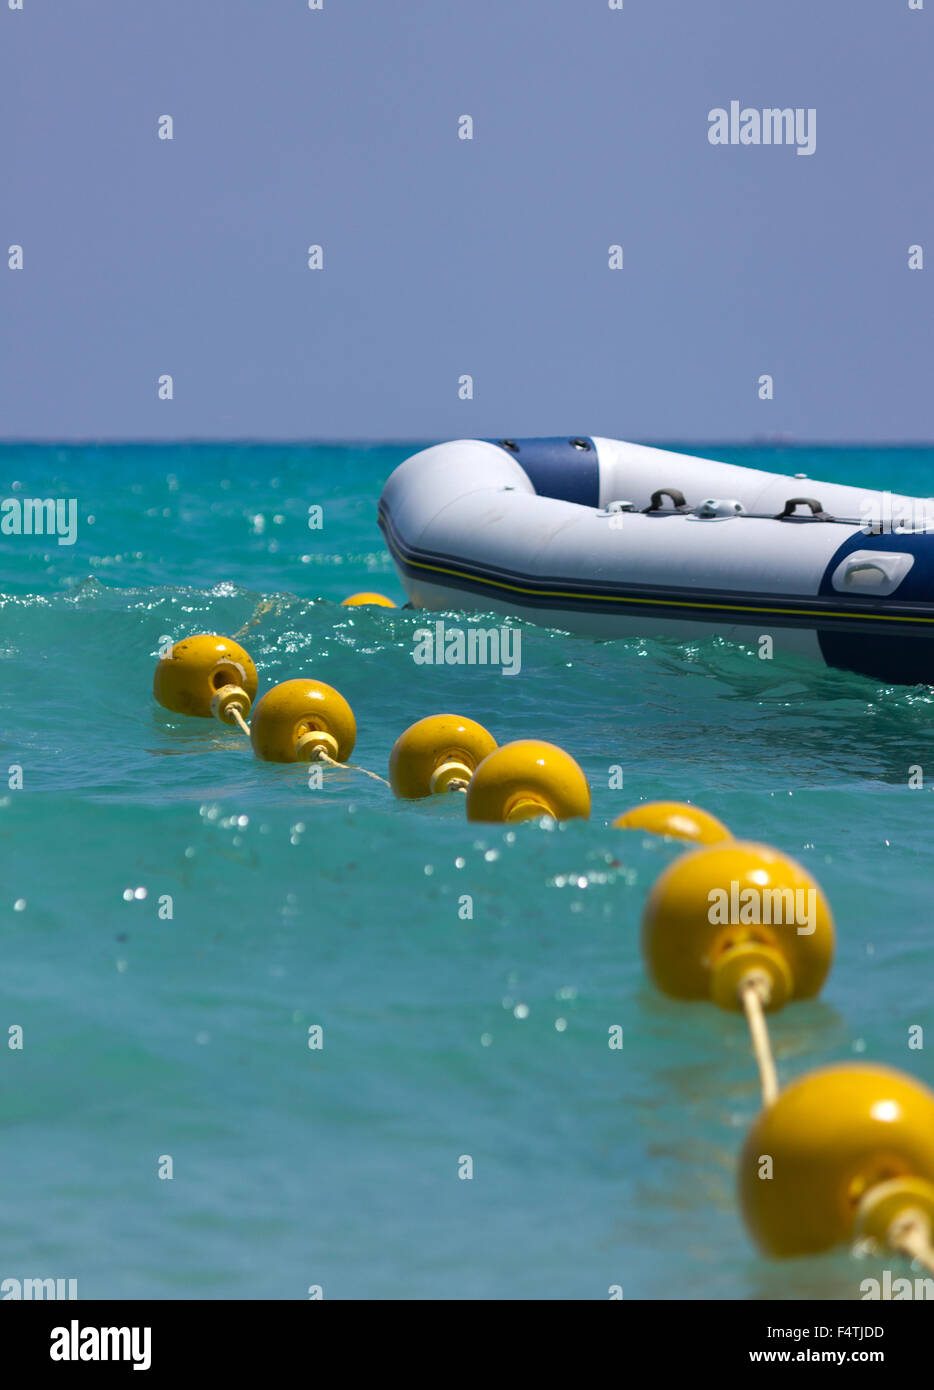 Boat and buoy - Stock Image